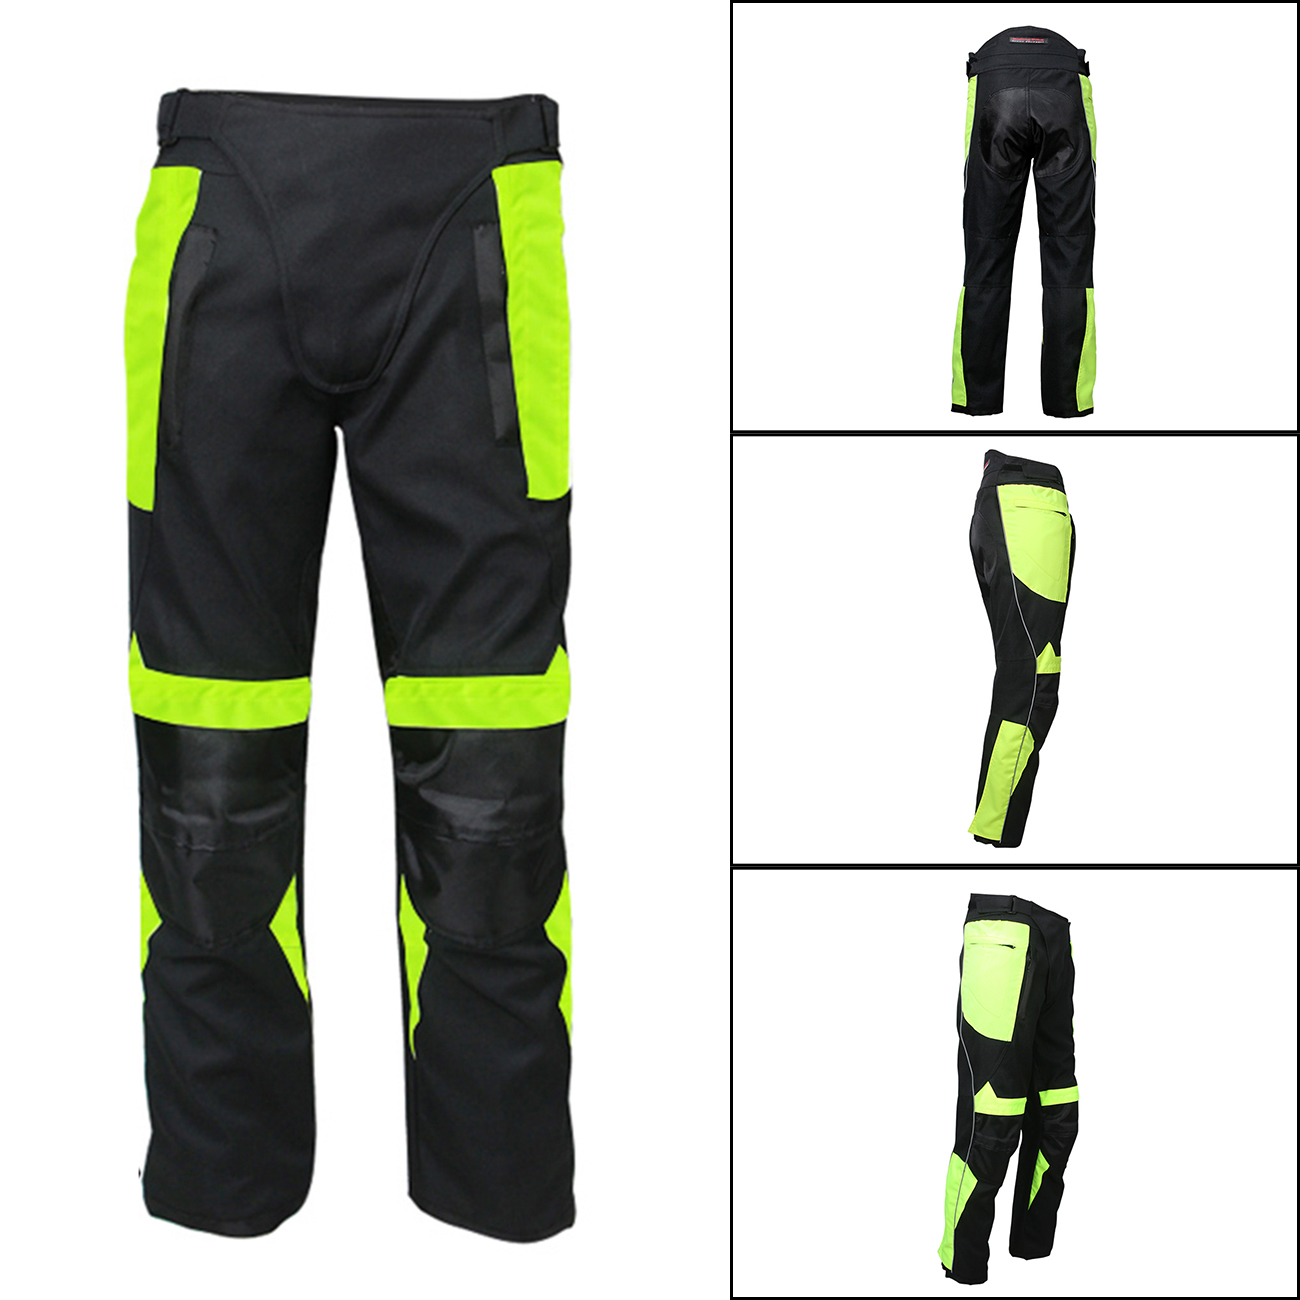 Plus Size Men's Windproof MOTO Pants Reflective Motorcycle Mountain Cycling Bike Trousers Long Pants Outdoor Clothing #MD238 mens work clothing reflective coveralls windproof road safety maritime clothing protective clothes uniform workwear plus size